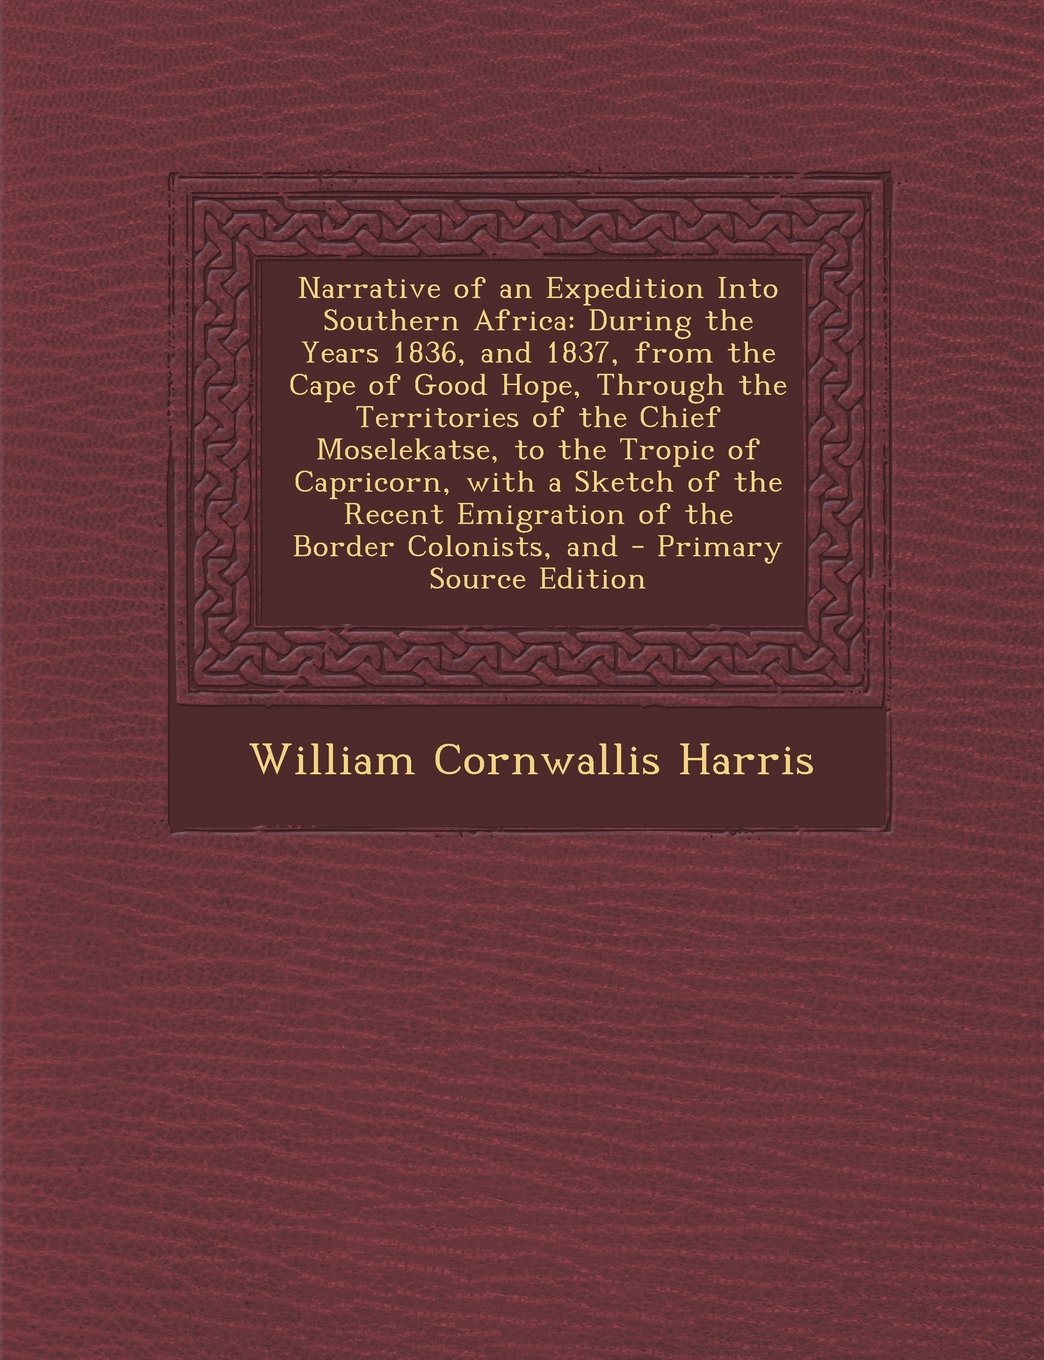 Download Narrative of an Expedition Into Southern Africa: During the Years 1836, and 1837, from the Cape of Good Hope, Through the Territories of the Chief ... Emigration of the Border Colonists, and pdf epub